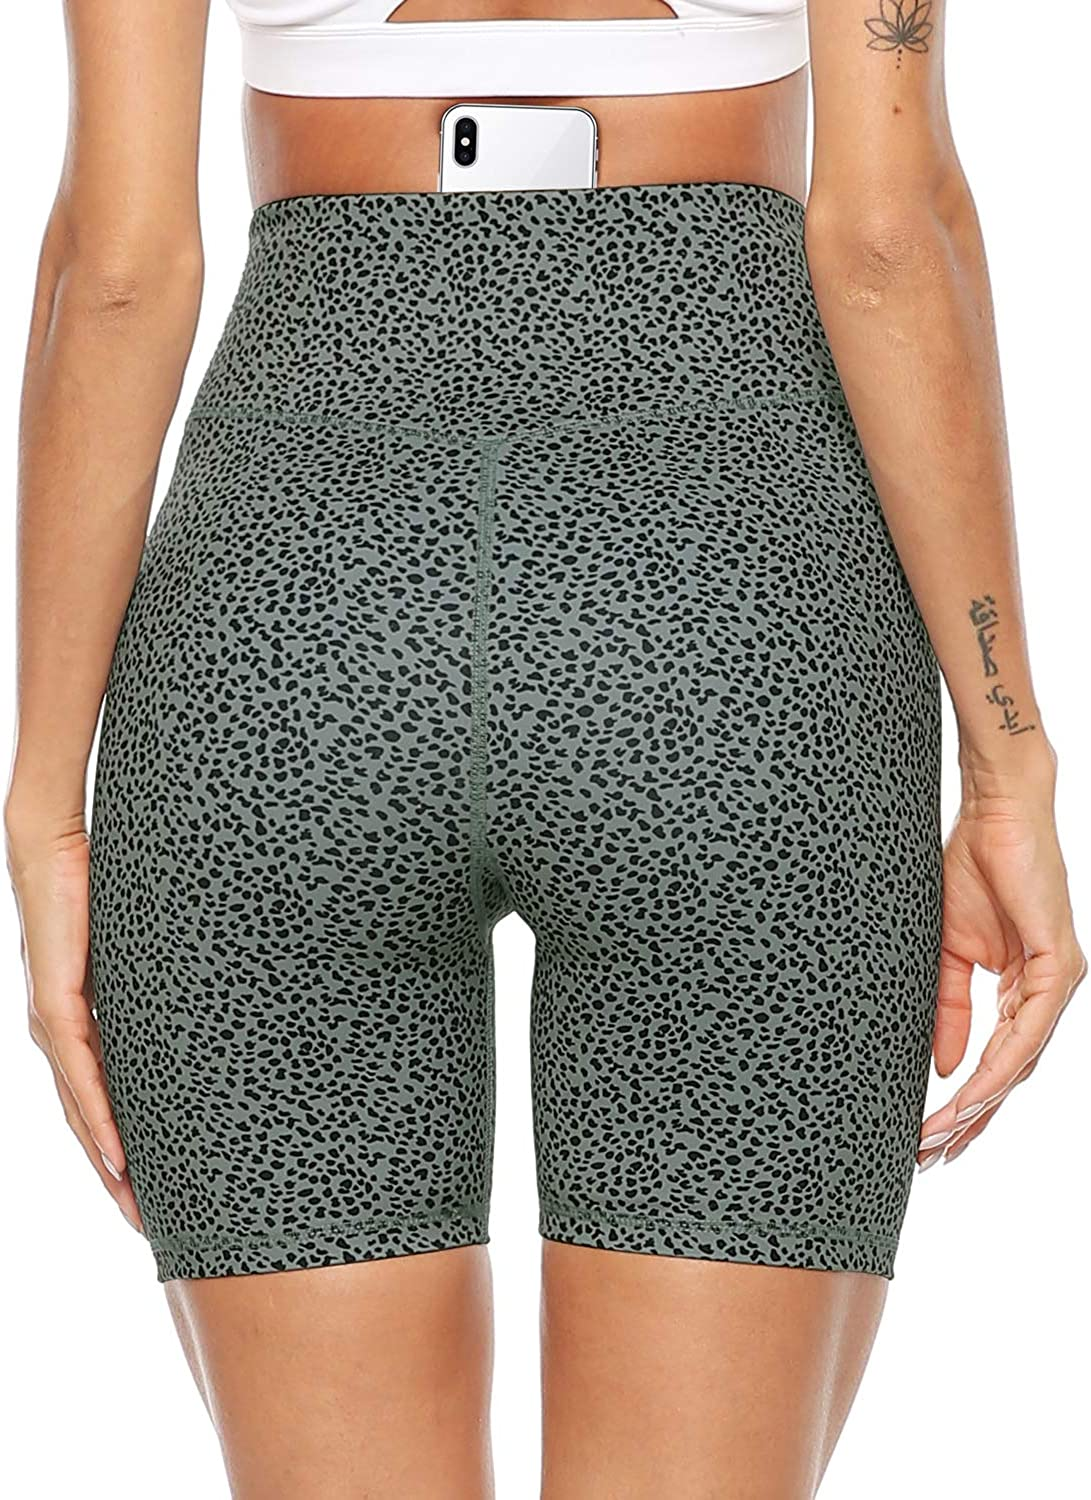 Persit Women's High Waist Print Workout Yoga Shorts with 2 Hidden Pockets, Non See-Through Tummy Control Athletic Shorts: Clothing